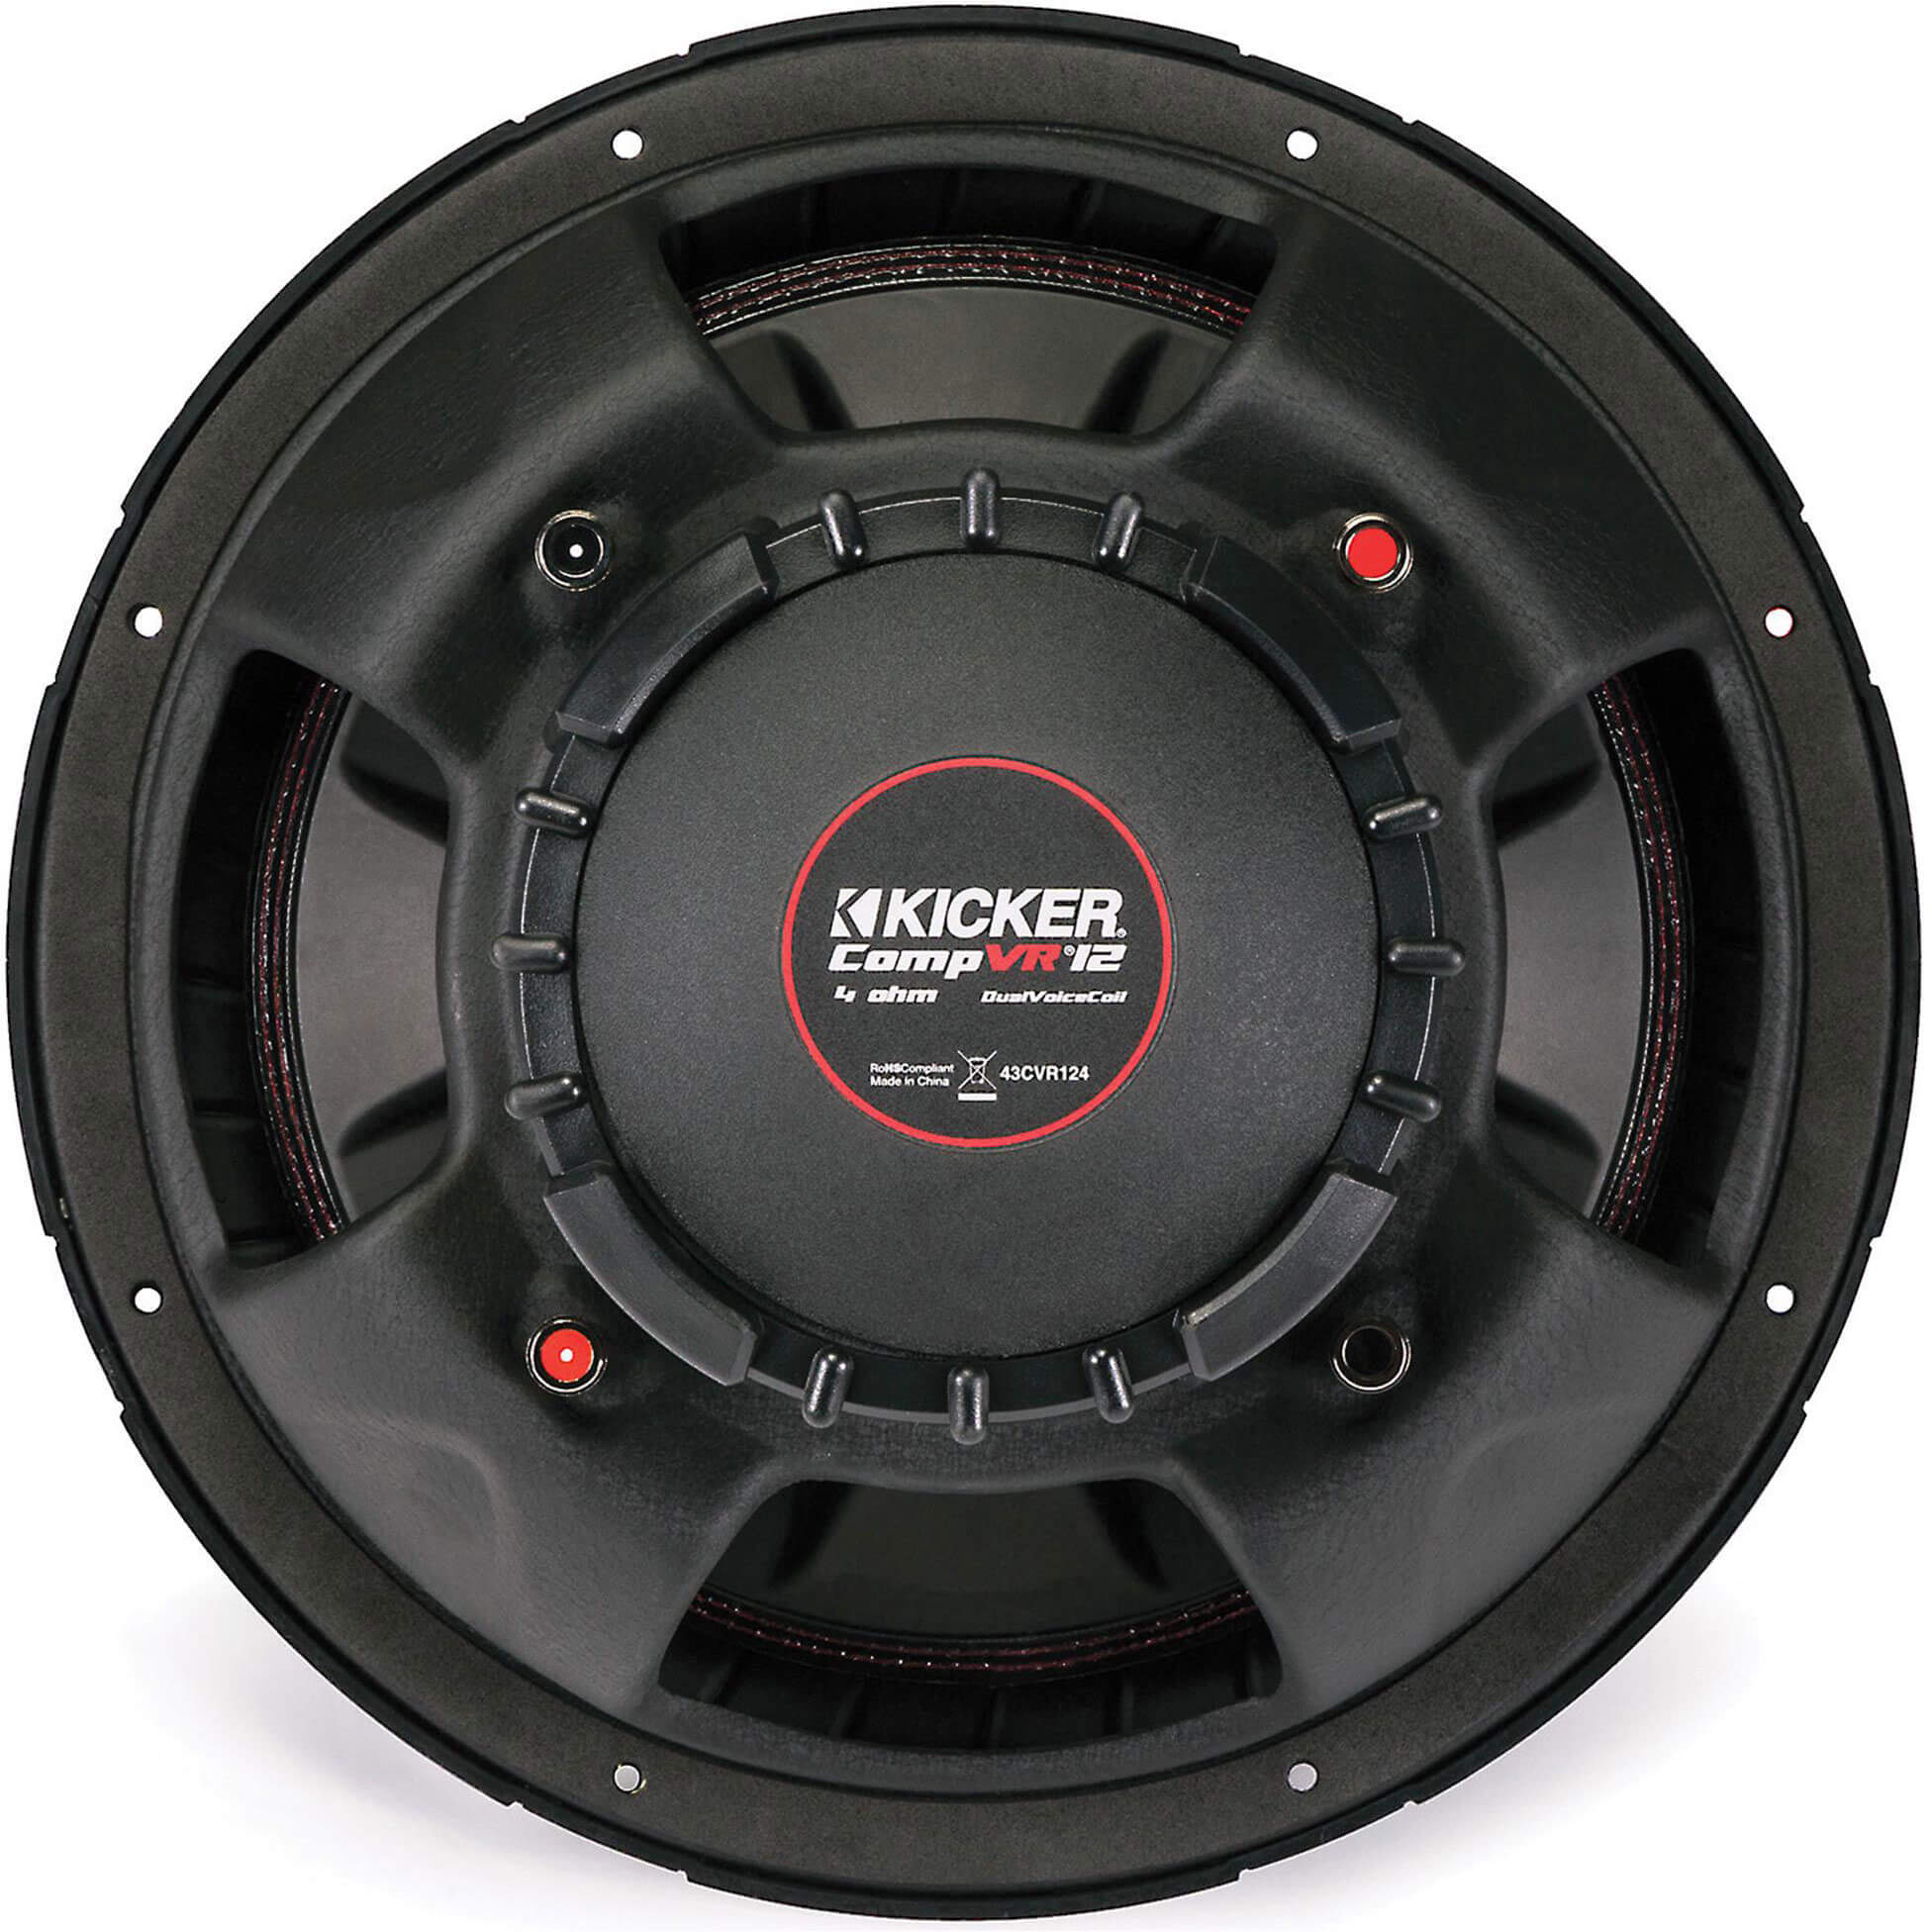 12 inch subwoofer with dual 4-ohm voice coils